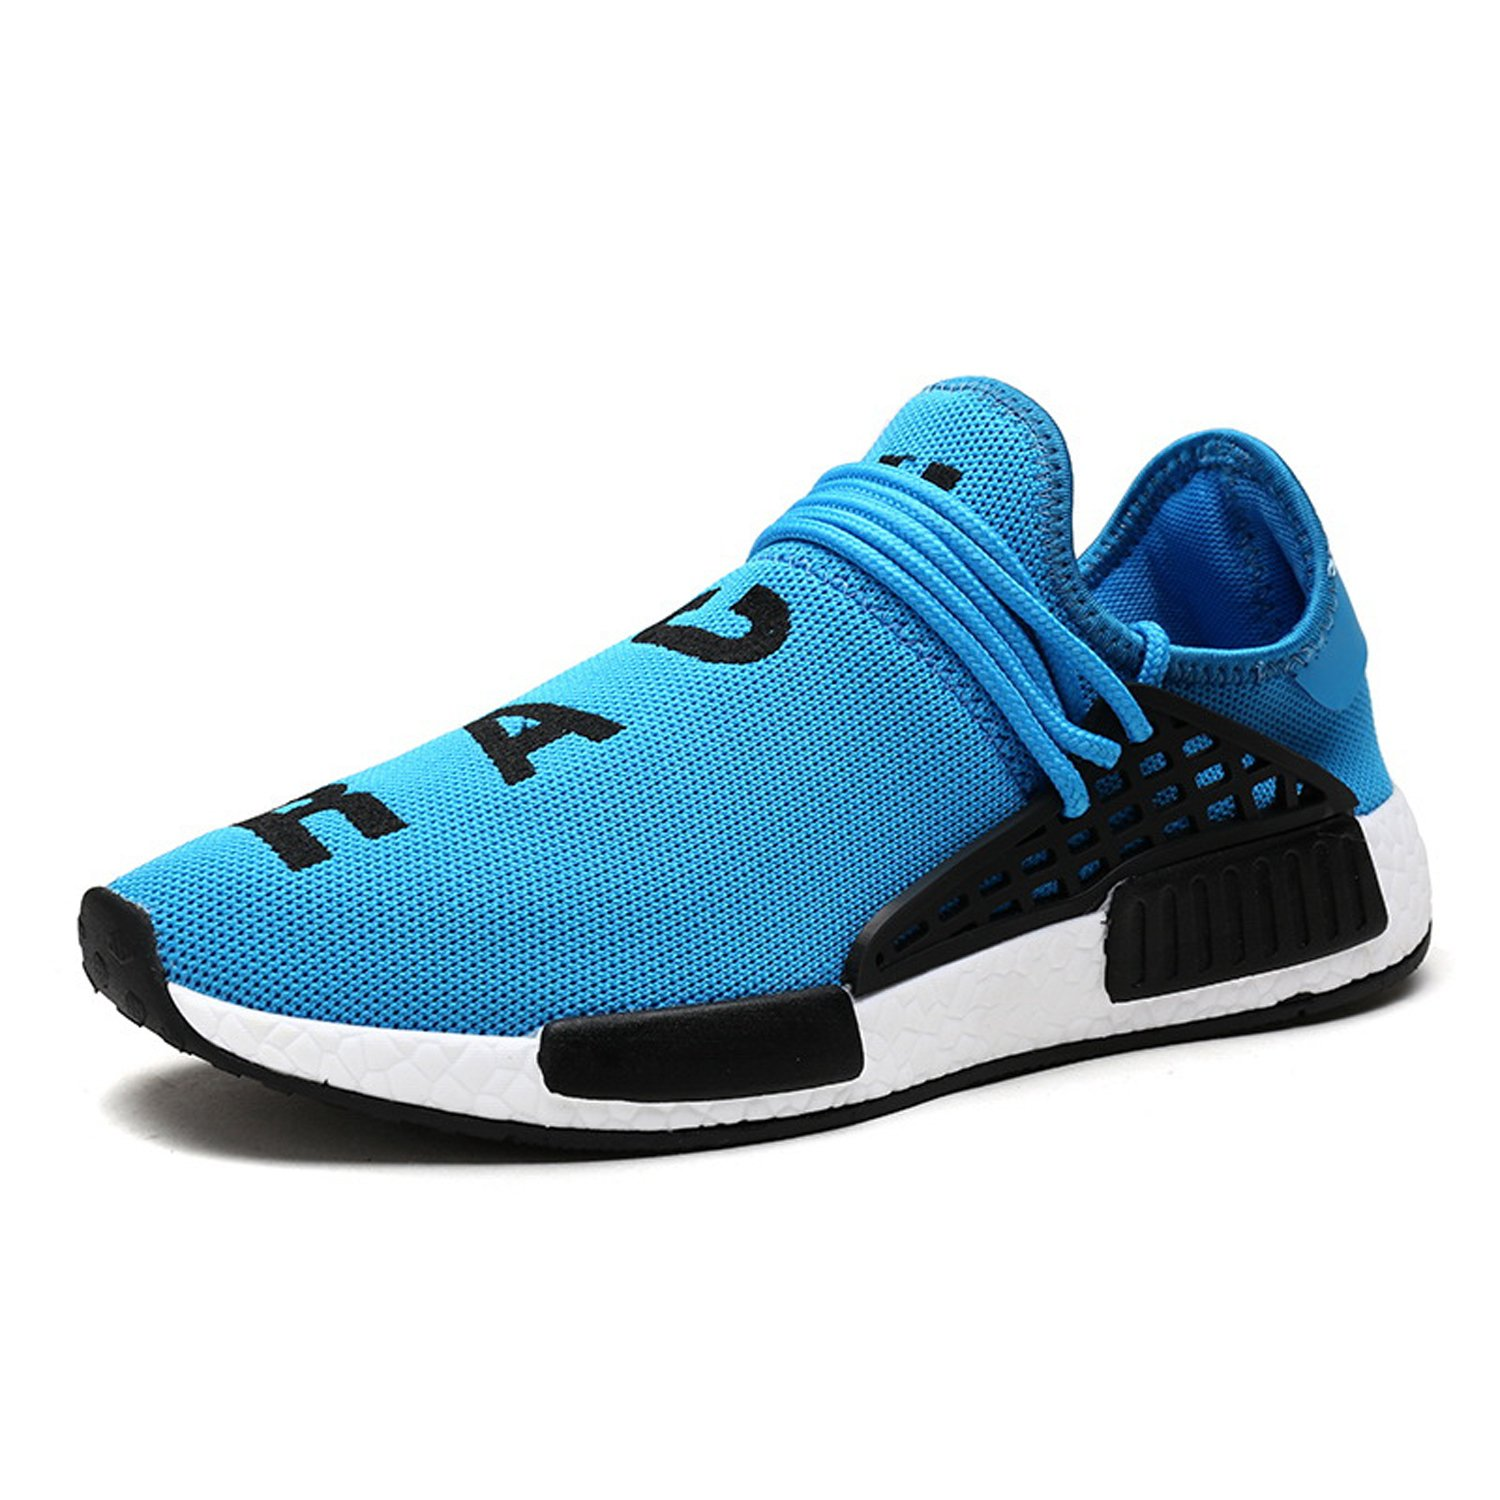 AI Aleng Mens Womens Unisex Lightweight Fashion Sneakers Breathable Lace-up Athletic Sports Shoes Human Race Casual Running Shoes Women 6.5 D(M) US/ Men 5 D(M) US|Blue